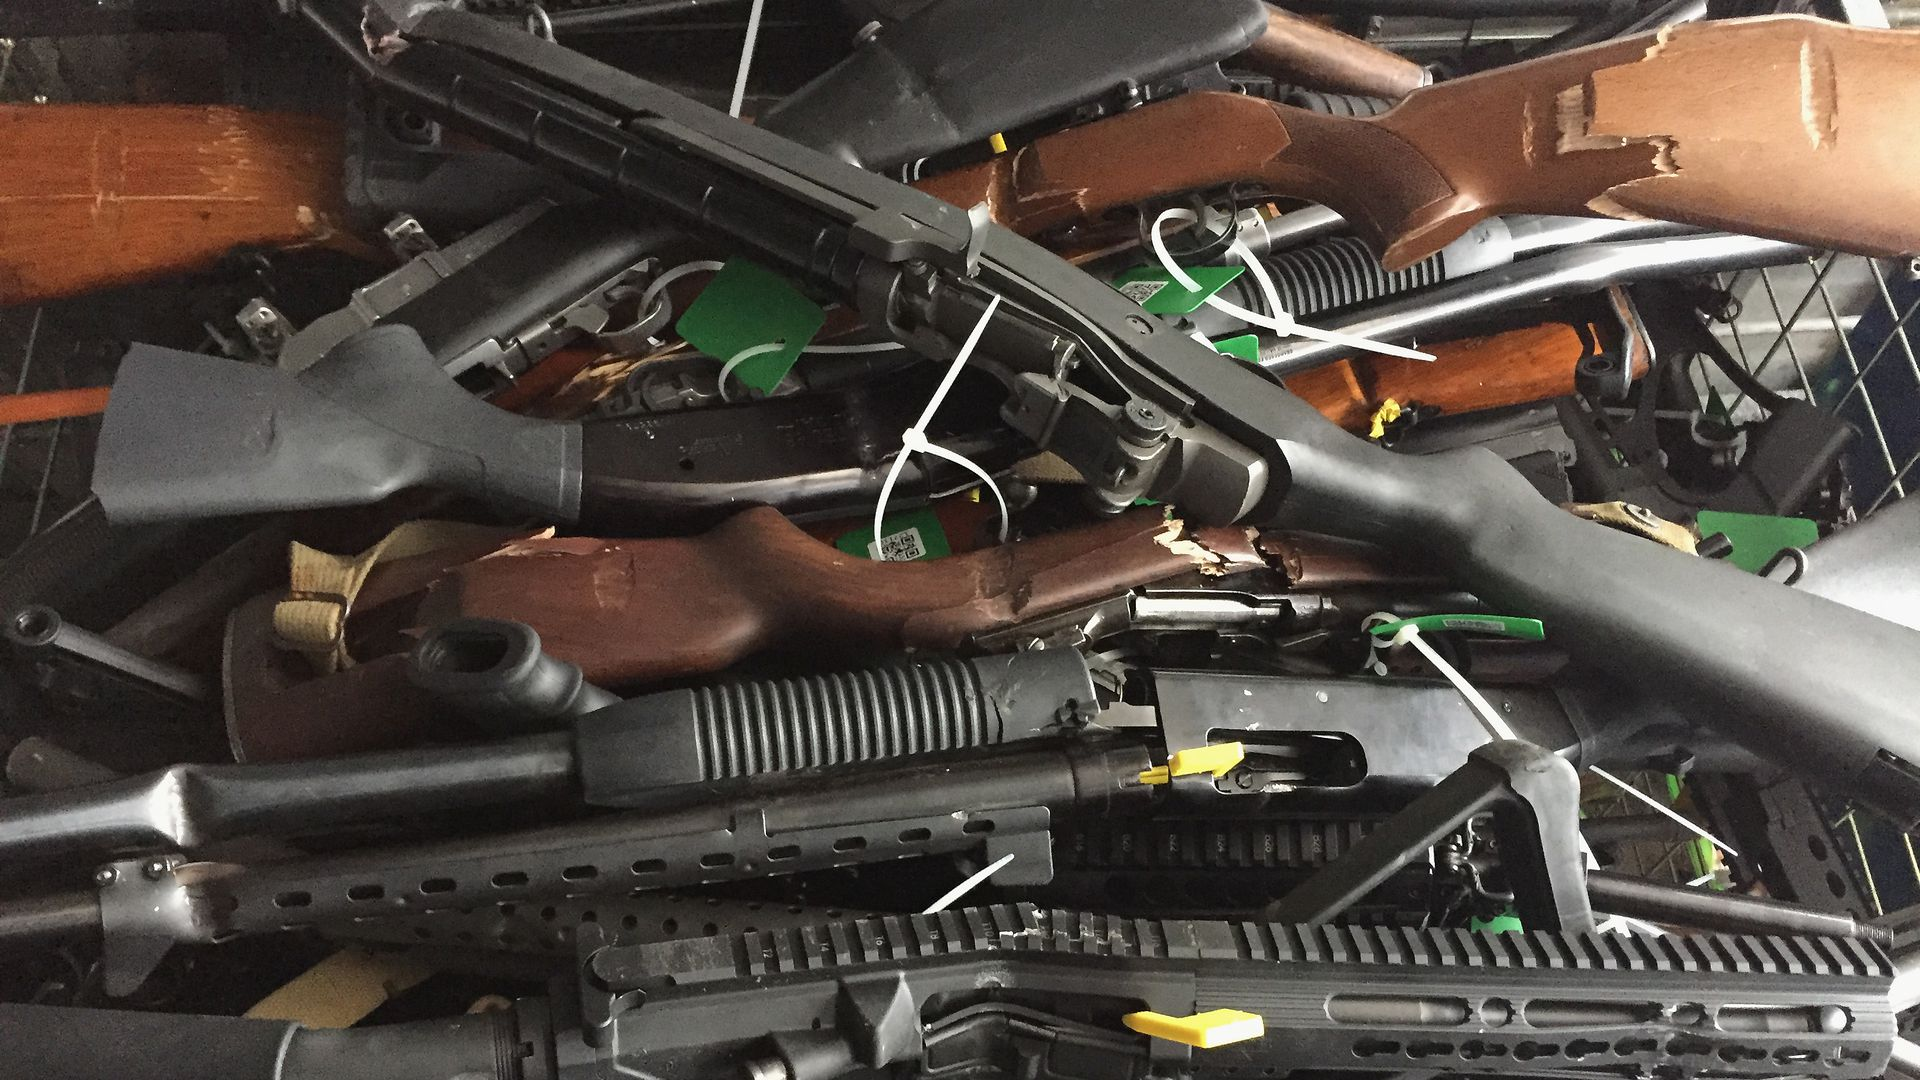 Collected firearms are seen at Riccarton Racecourse on July 13, 2019 in Christchurch, New Zealand.